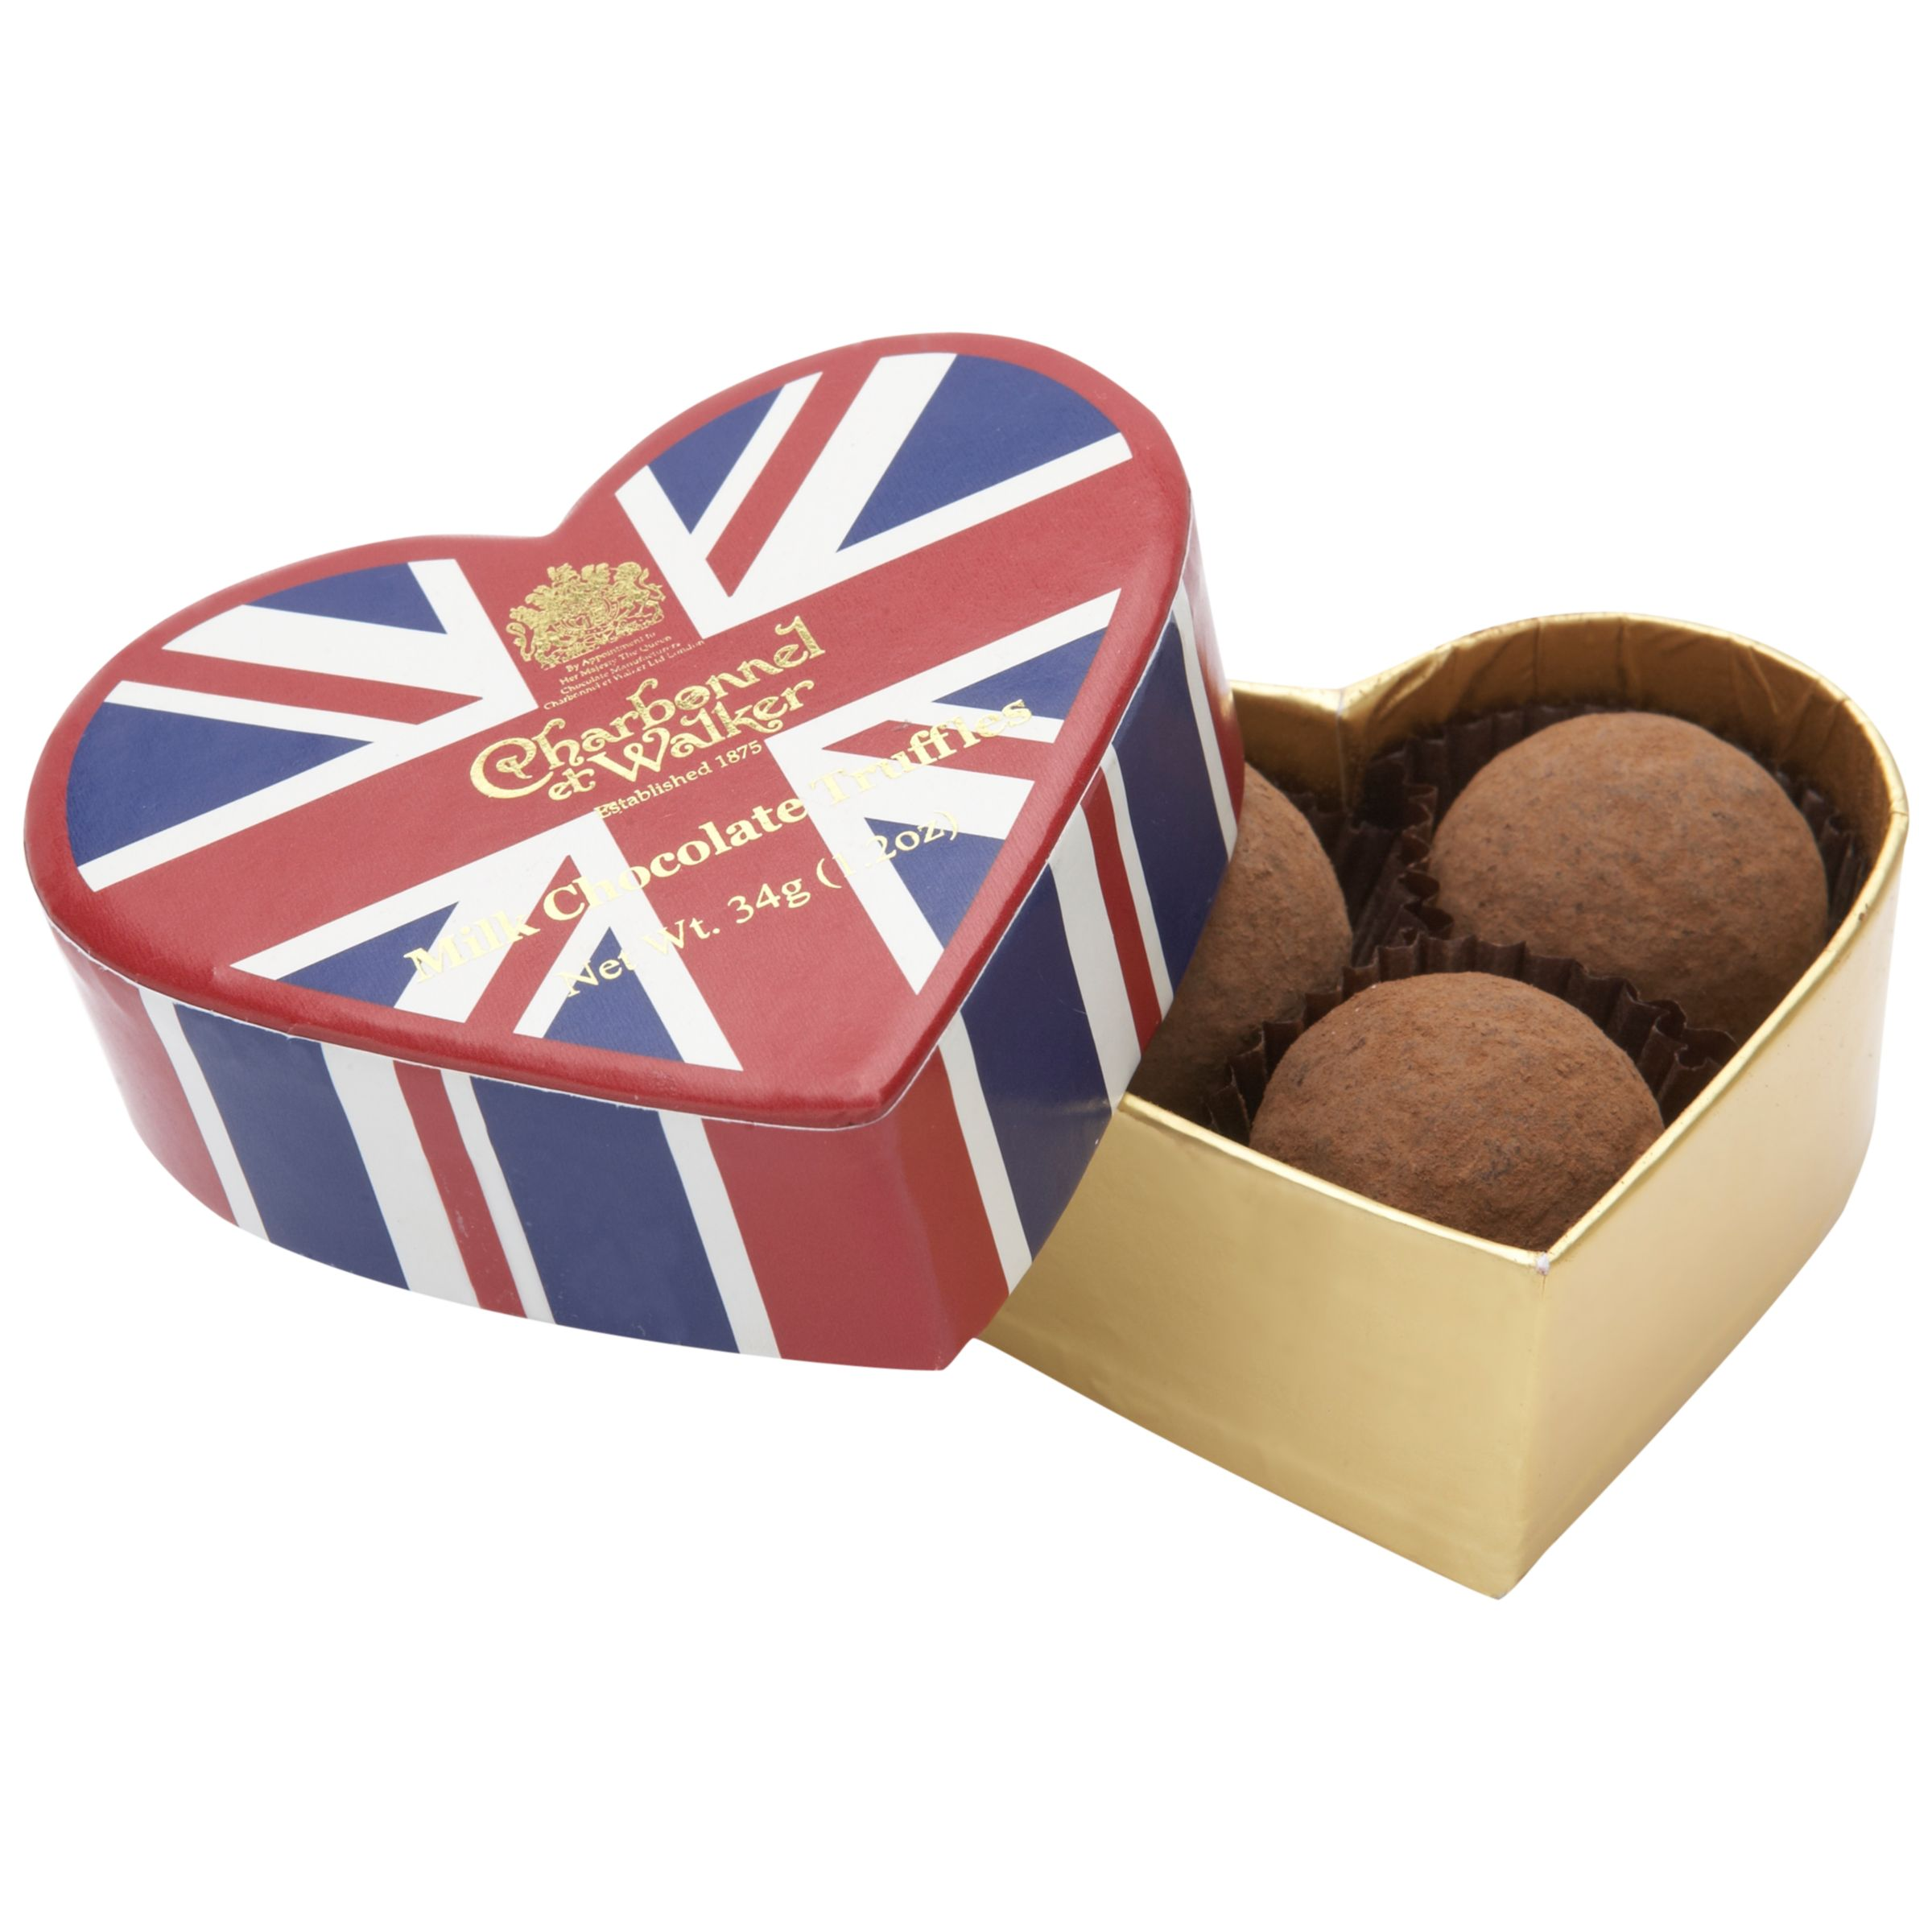 Charbonnel Et Walker Mini Truffles In A Union Jack Heart Box, 34g